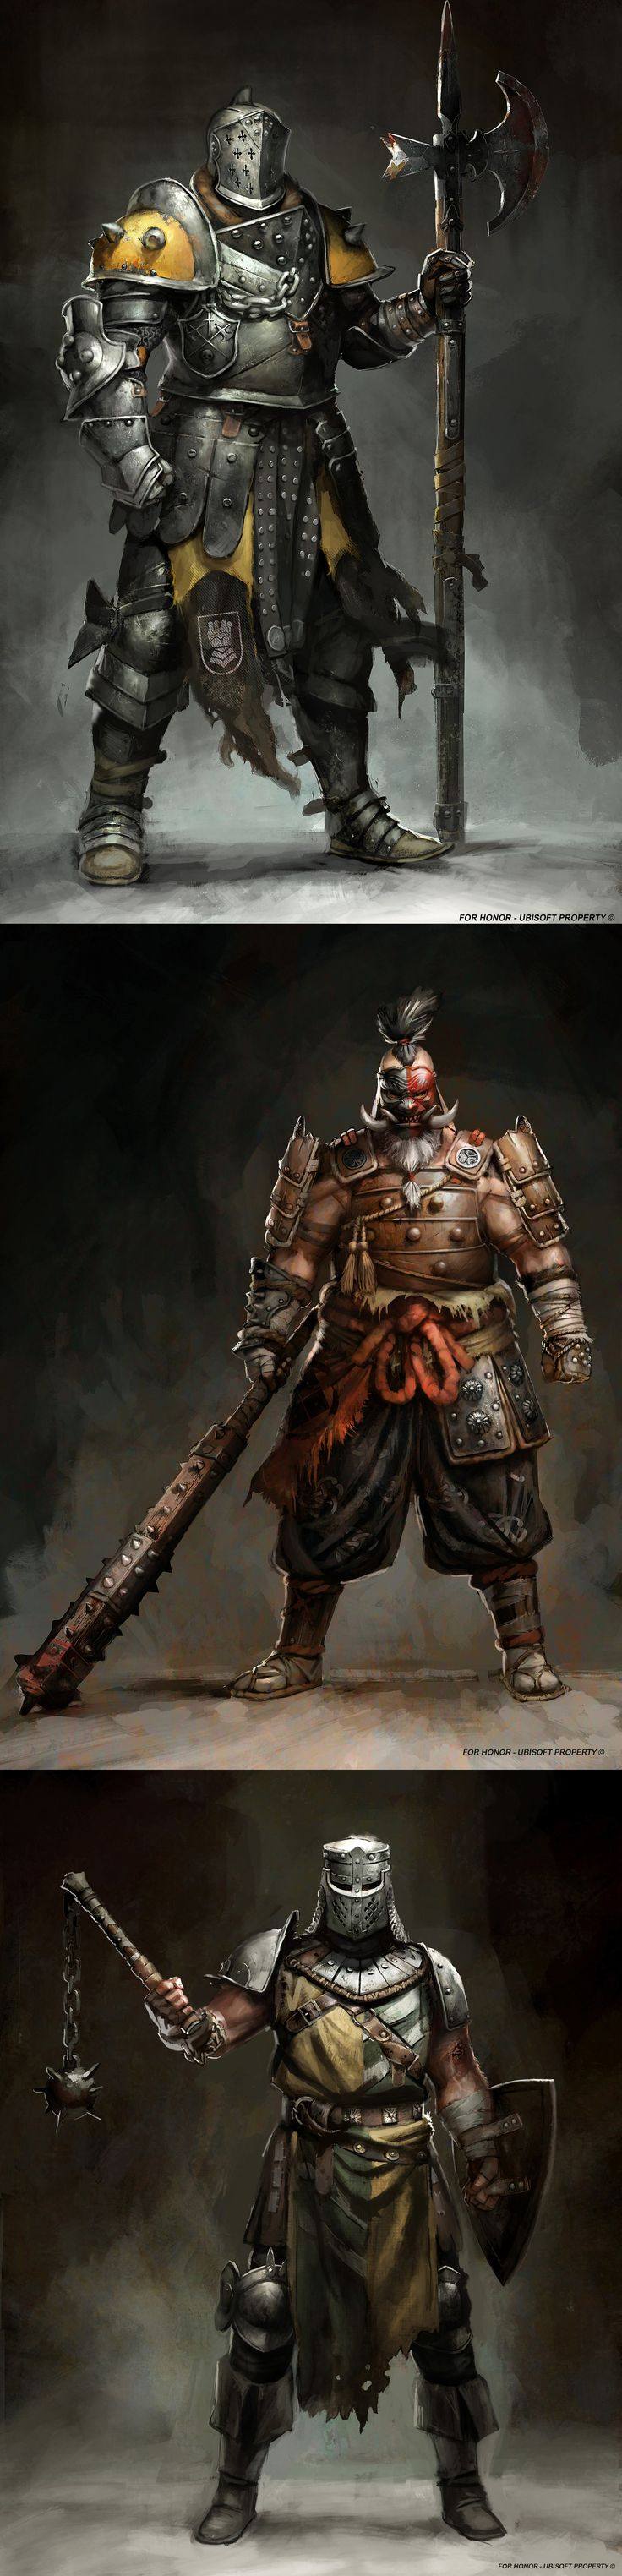 For Honor concept art by Guillaume Menuel